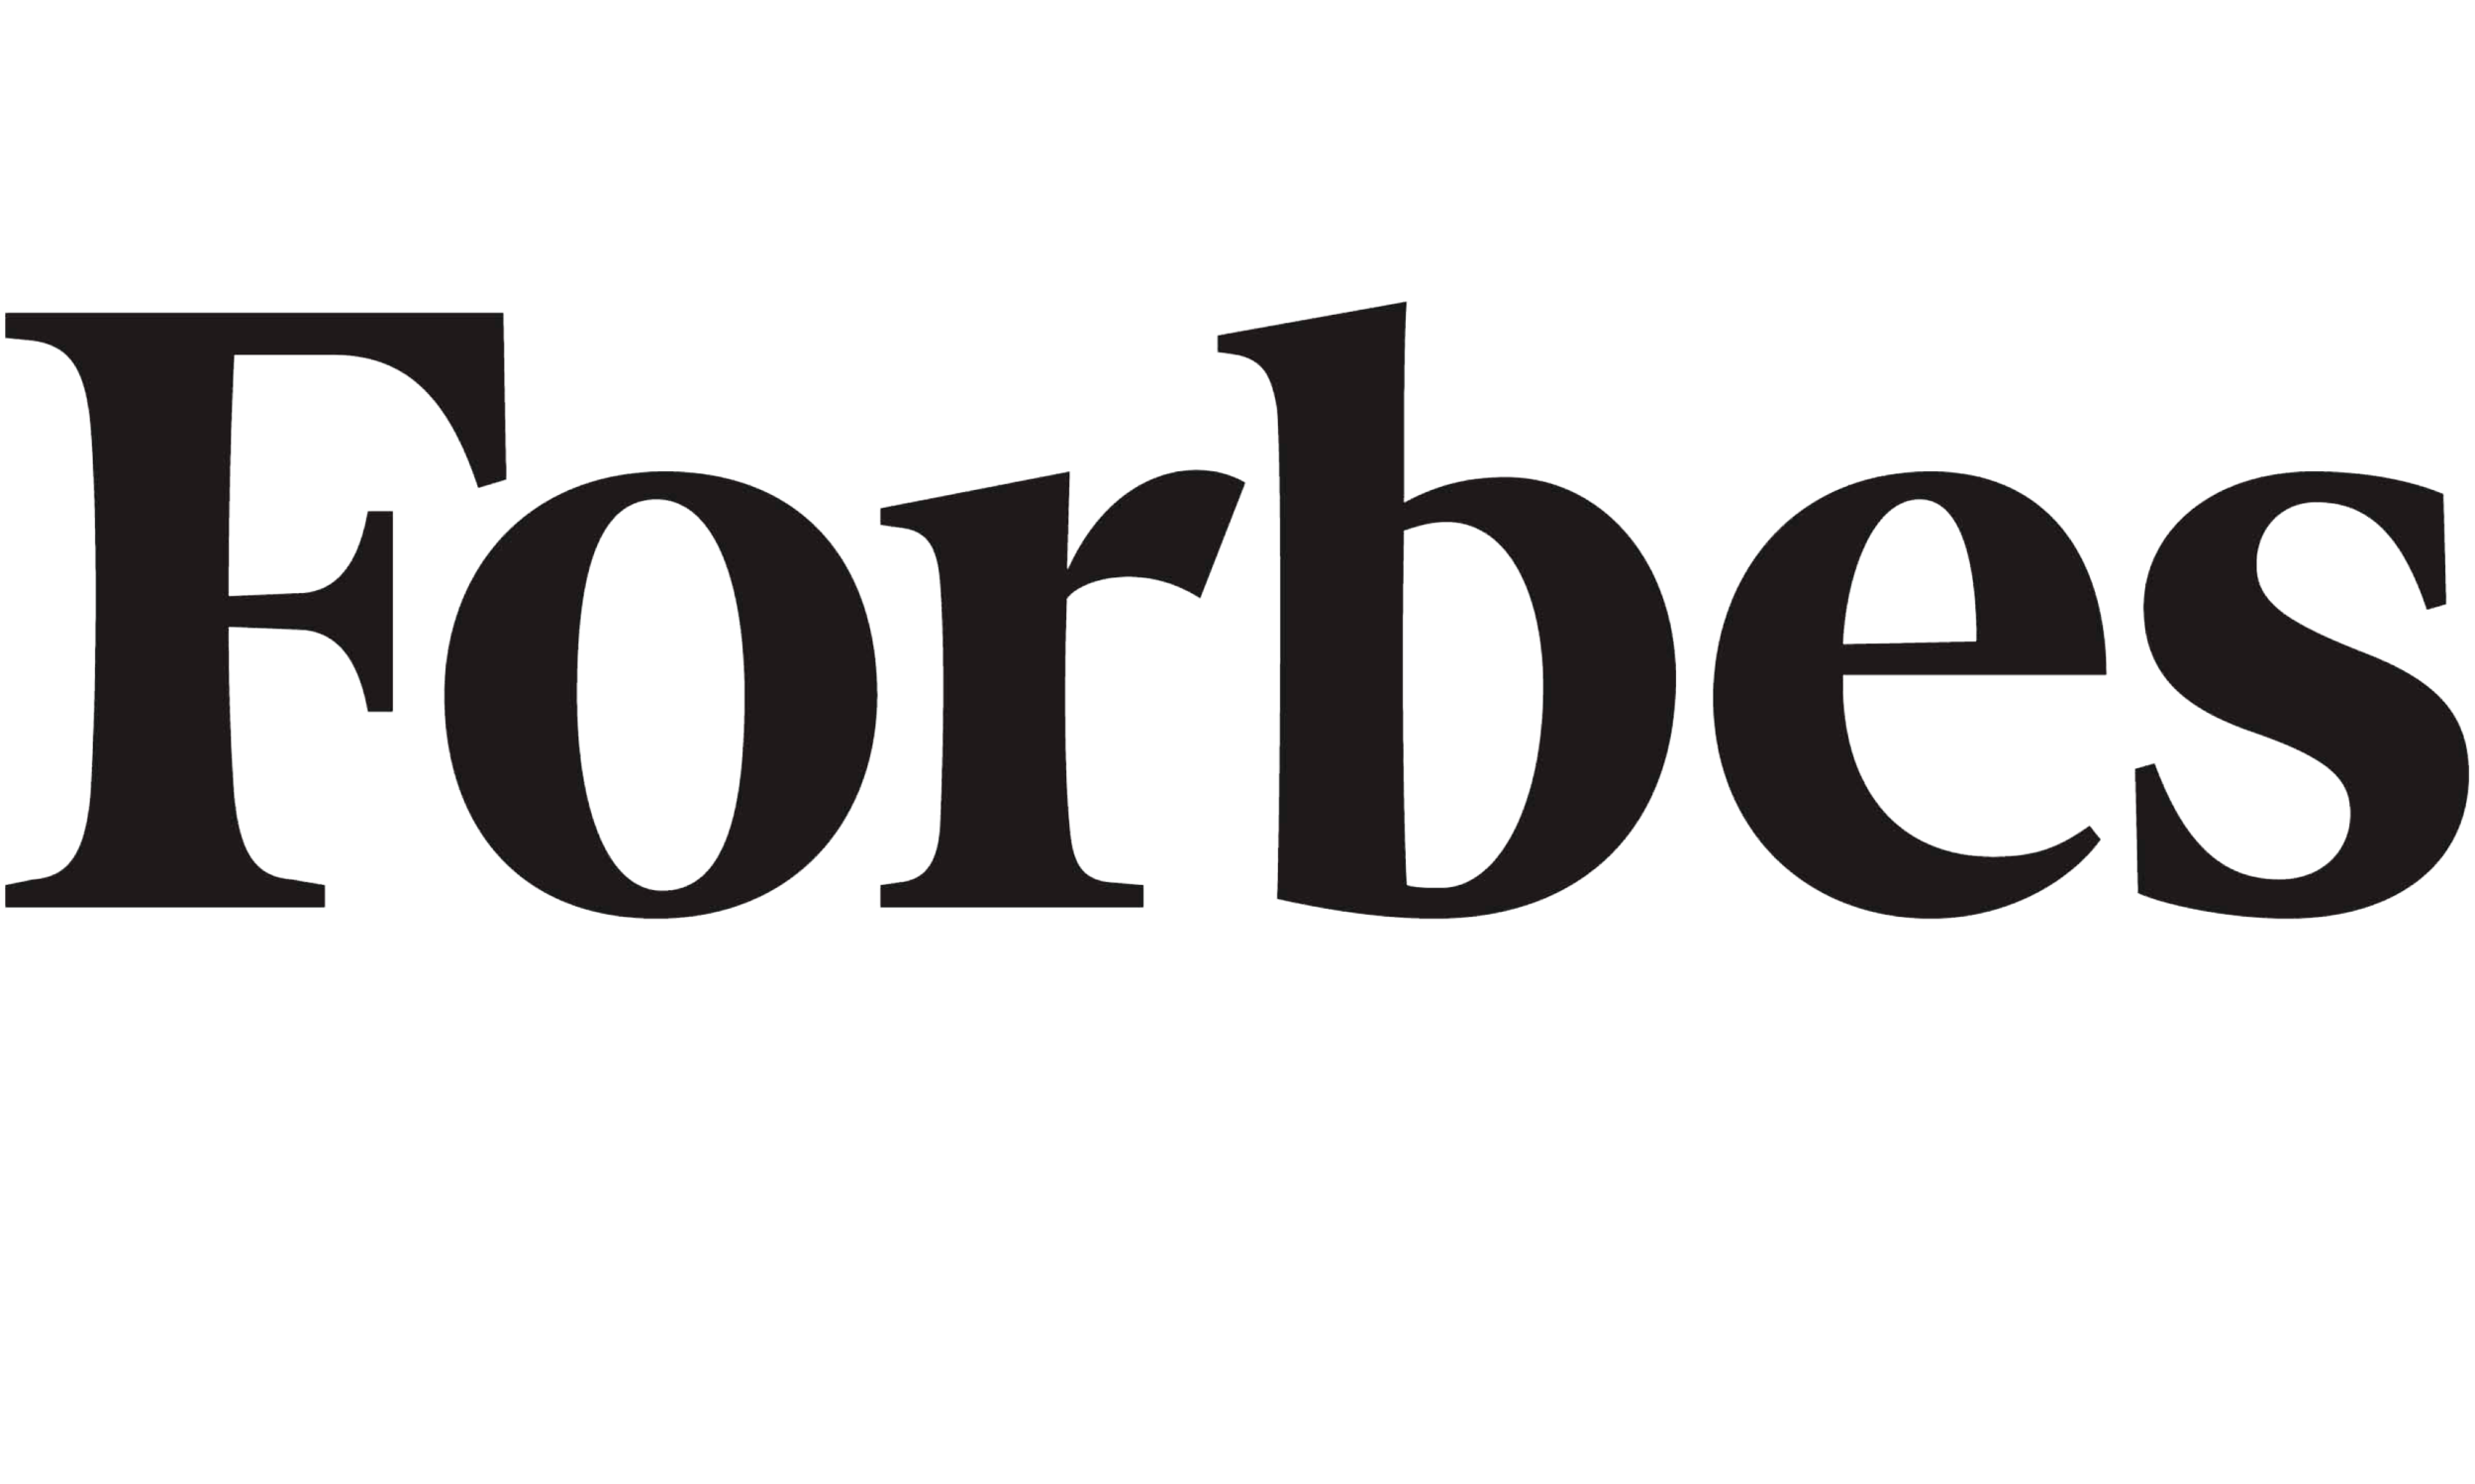 Logo_Forbes.png